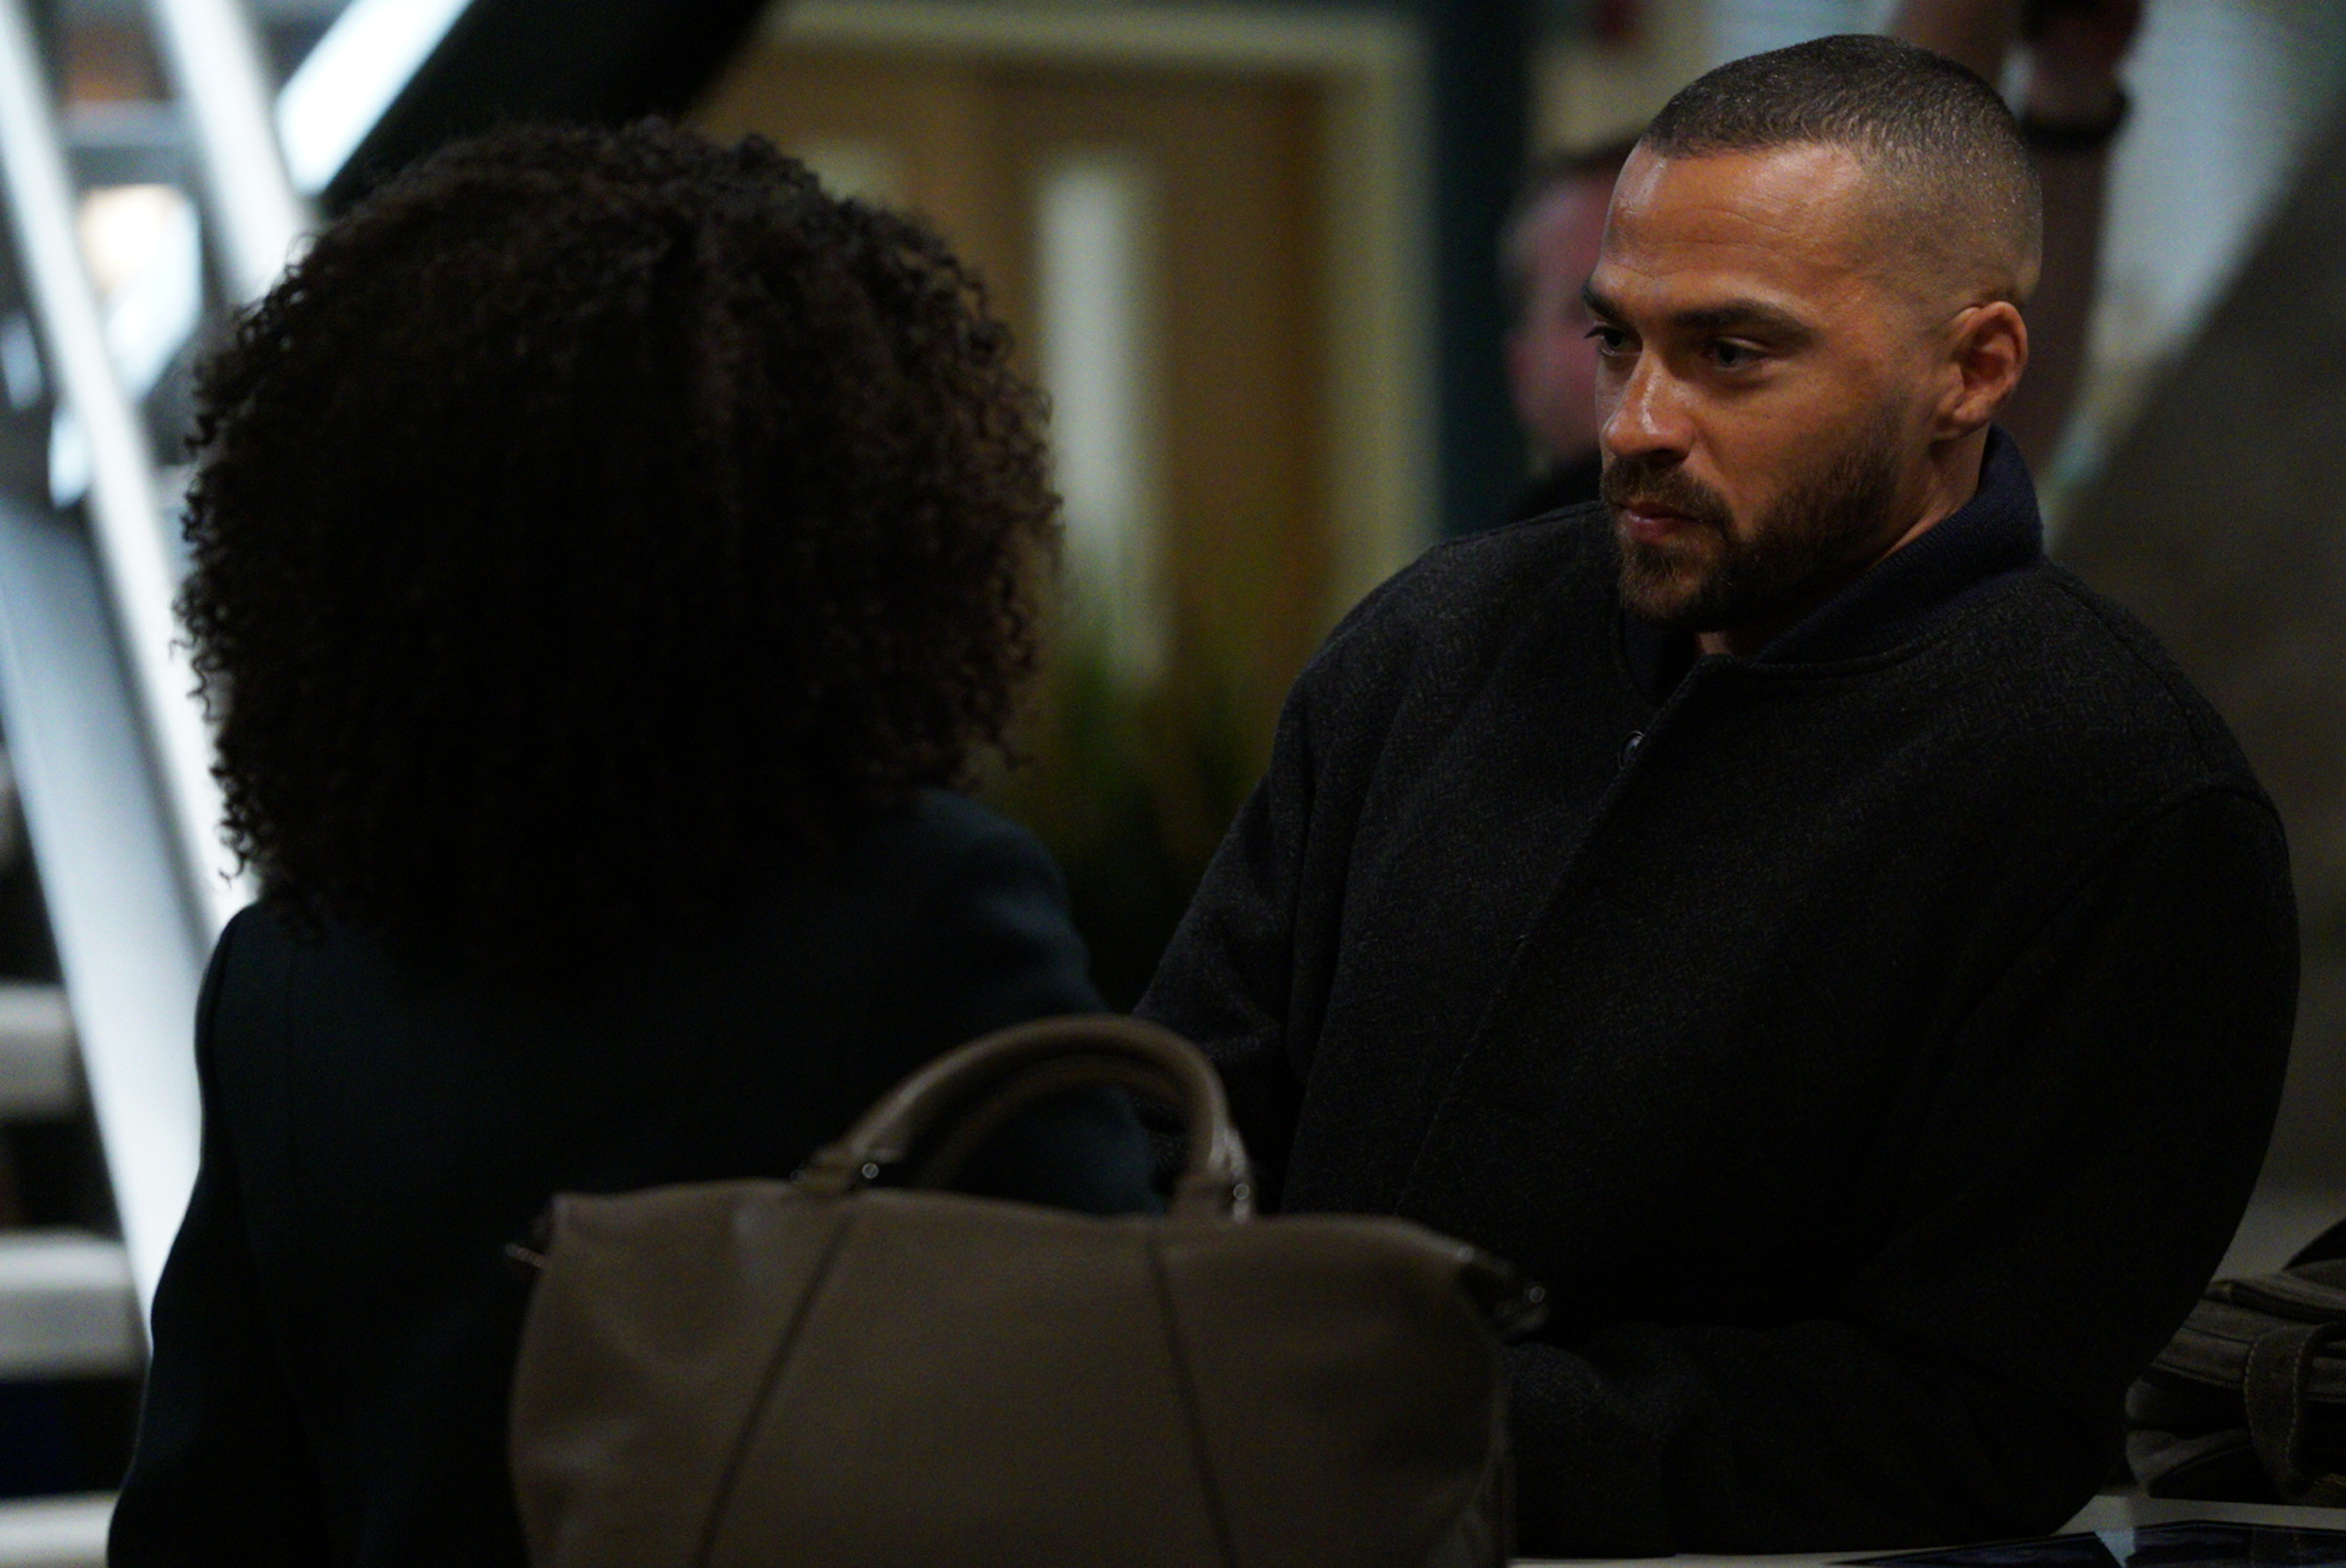 """GREY'S ANATOMY - """"Four Seasons in One Day"""" - Jo finally faces her estranged, abusive husband Paul Stadler, while Grey Sloan continues to work with the FBI after a hacker has compromised the hospital's computer system, on the midseason return of """"Grey's Anatomy,"""" THURSDAY, JAN. 18 (8:00-9:00 p.m. EST), on The ABC Television Network. (ABC/Richard Cartwright)JESSE WILLIAMS"""